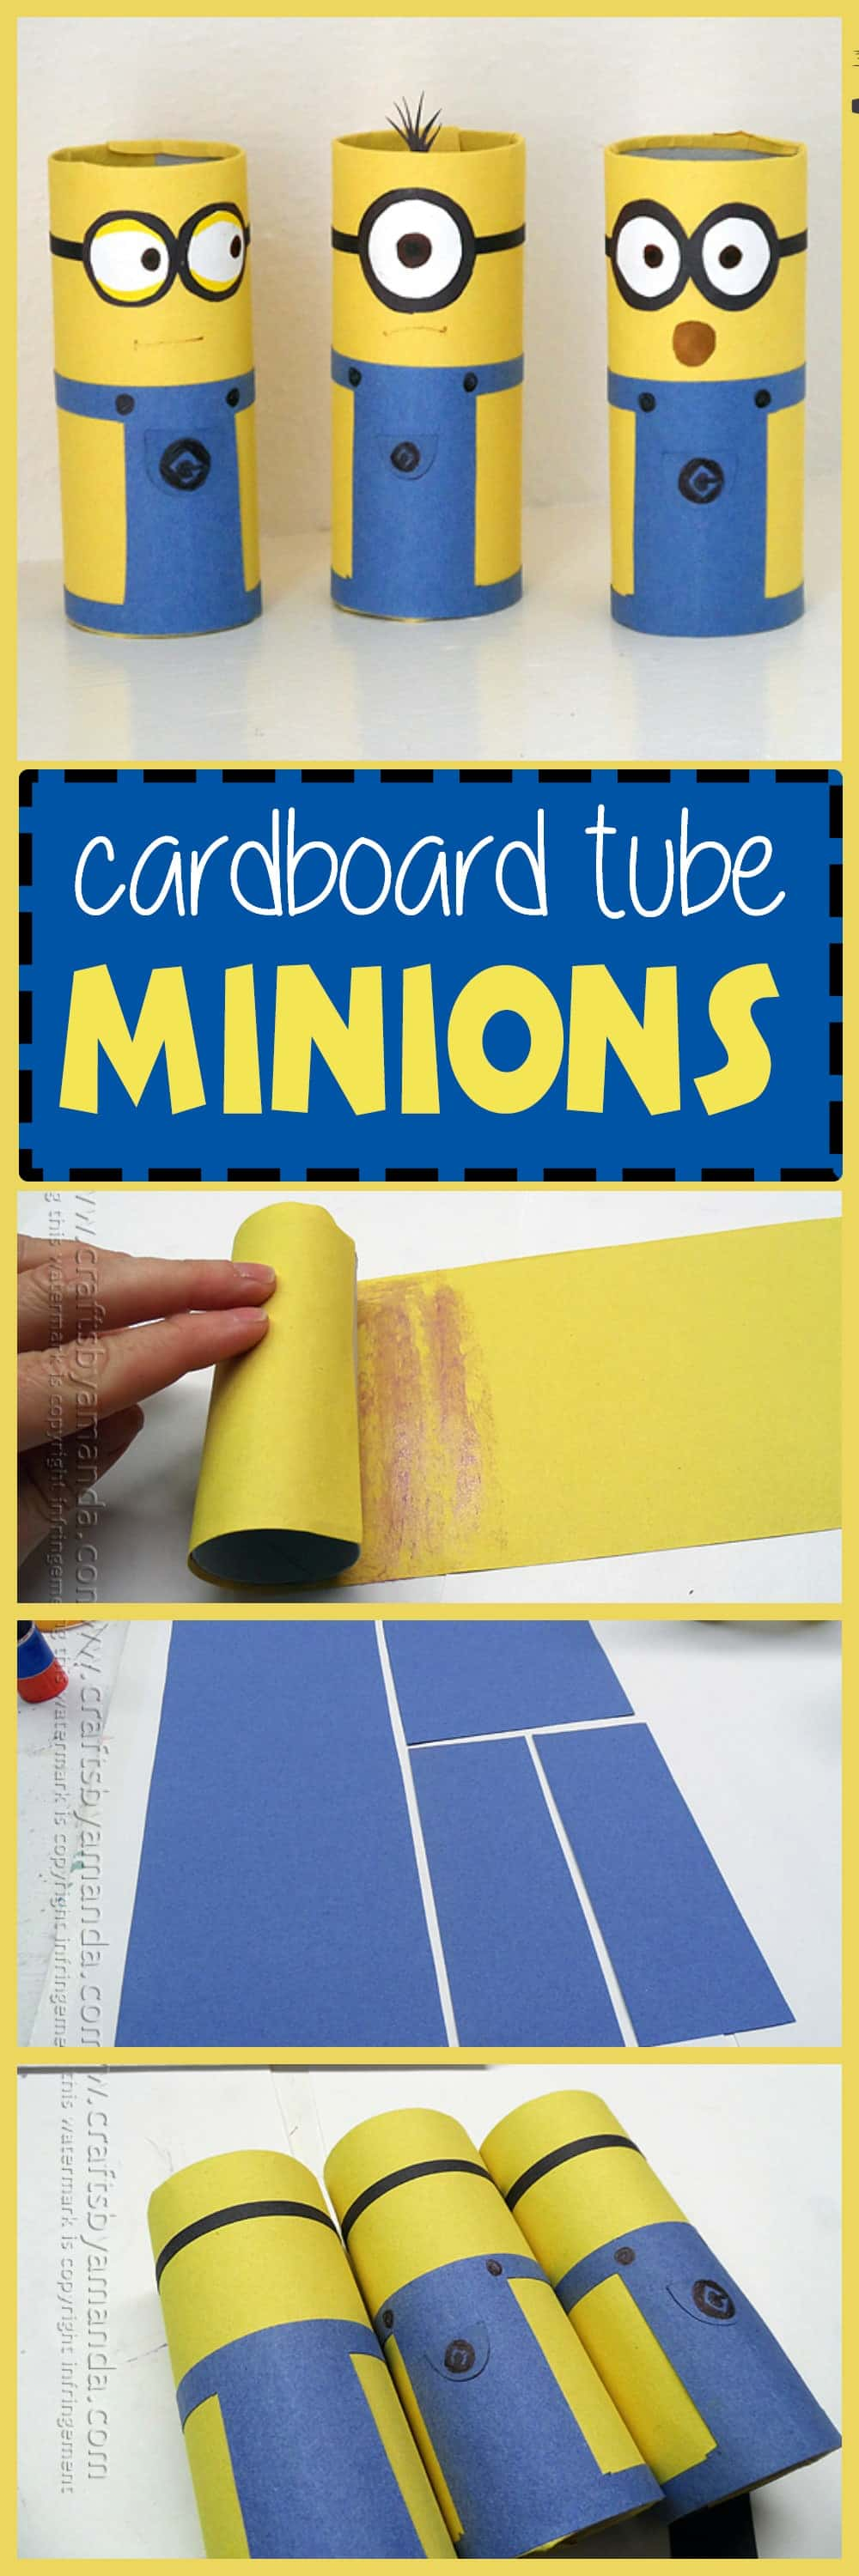 Cardboard Tube Minions: your kids will love making these fun minions using a few simple supplies you probably already have on hand!